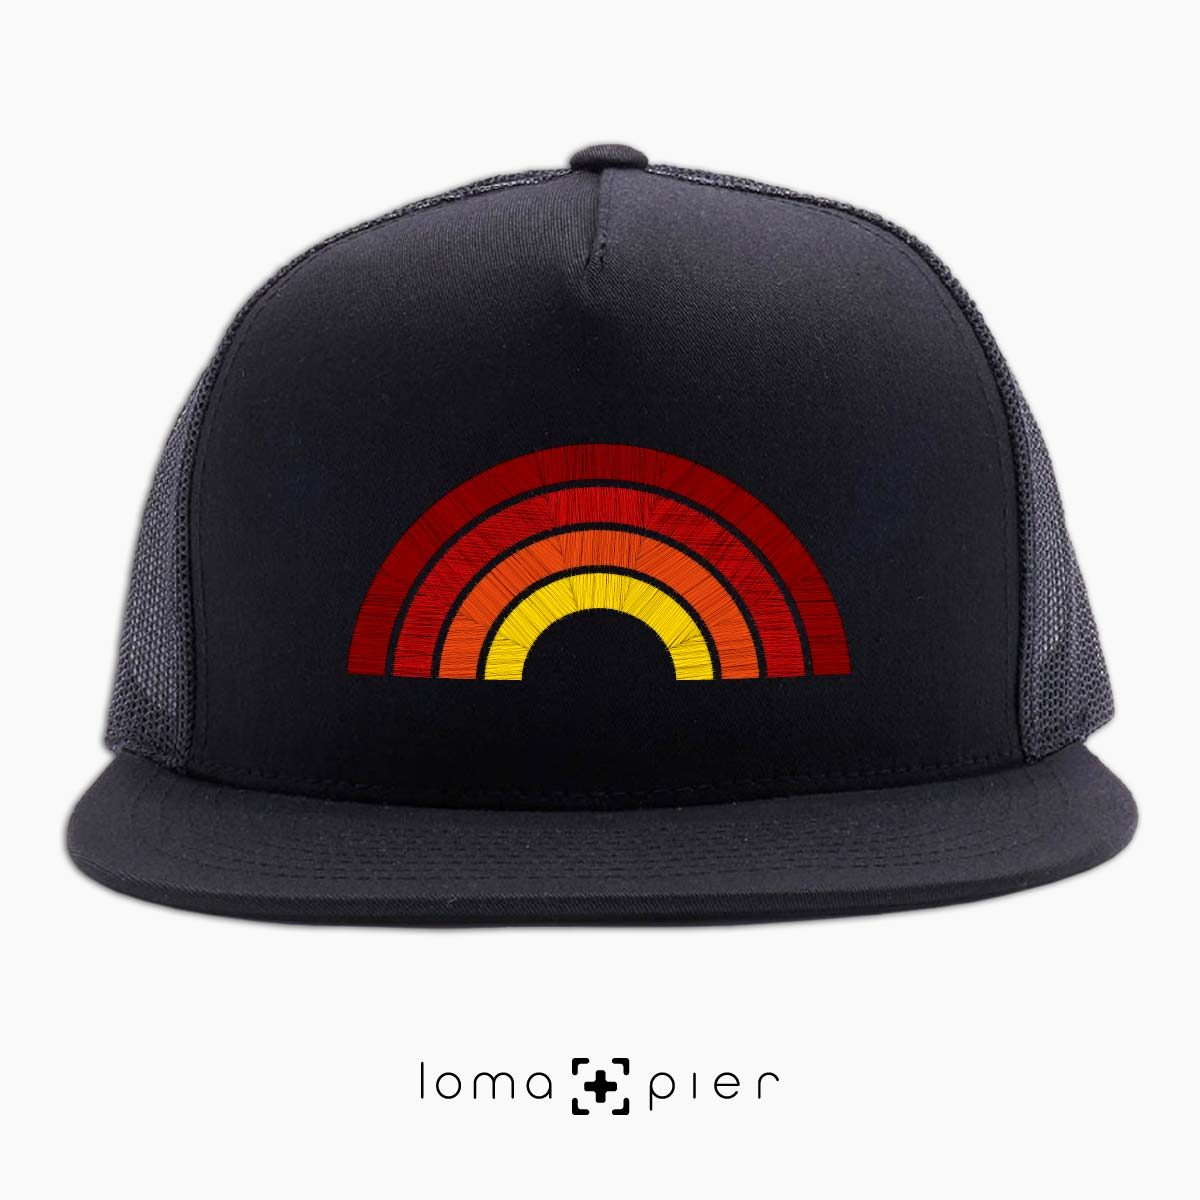 hermosa BEACH RAINBOW netback hat in black by loma+pier hat store